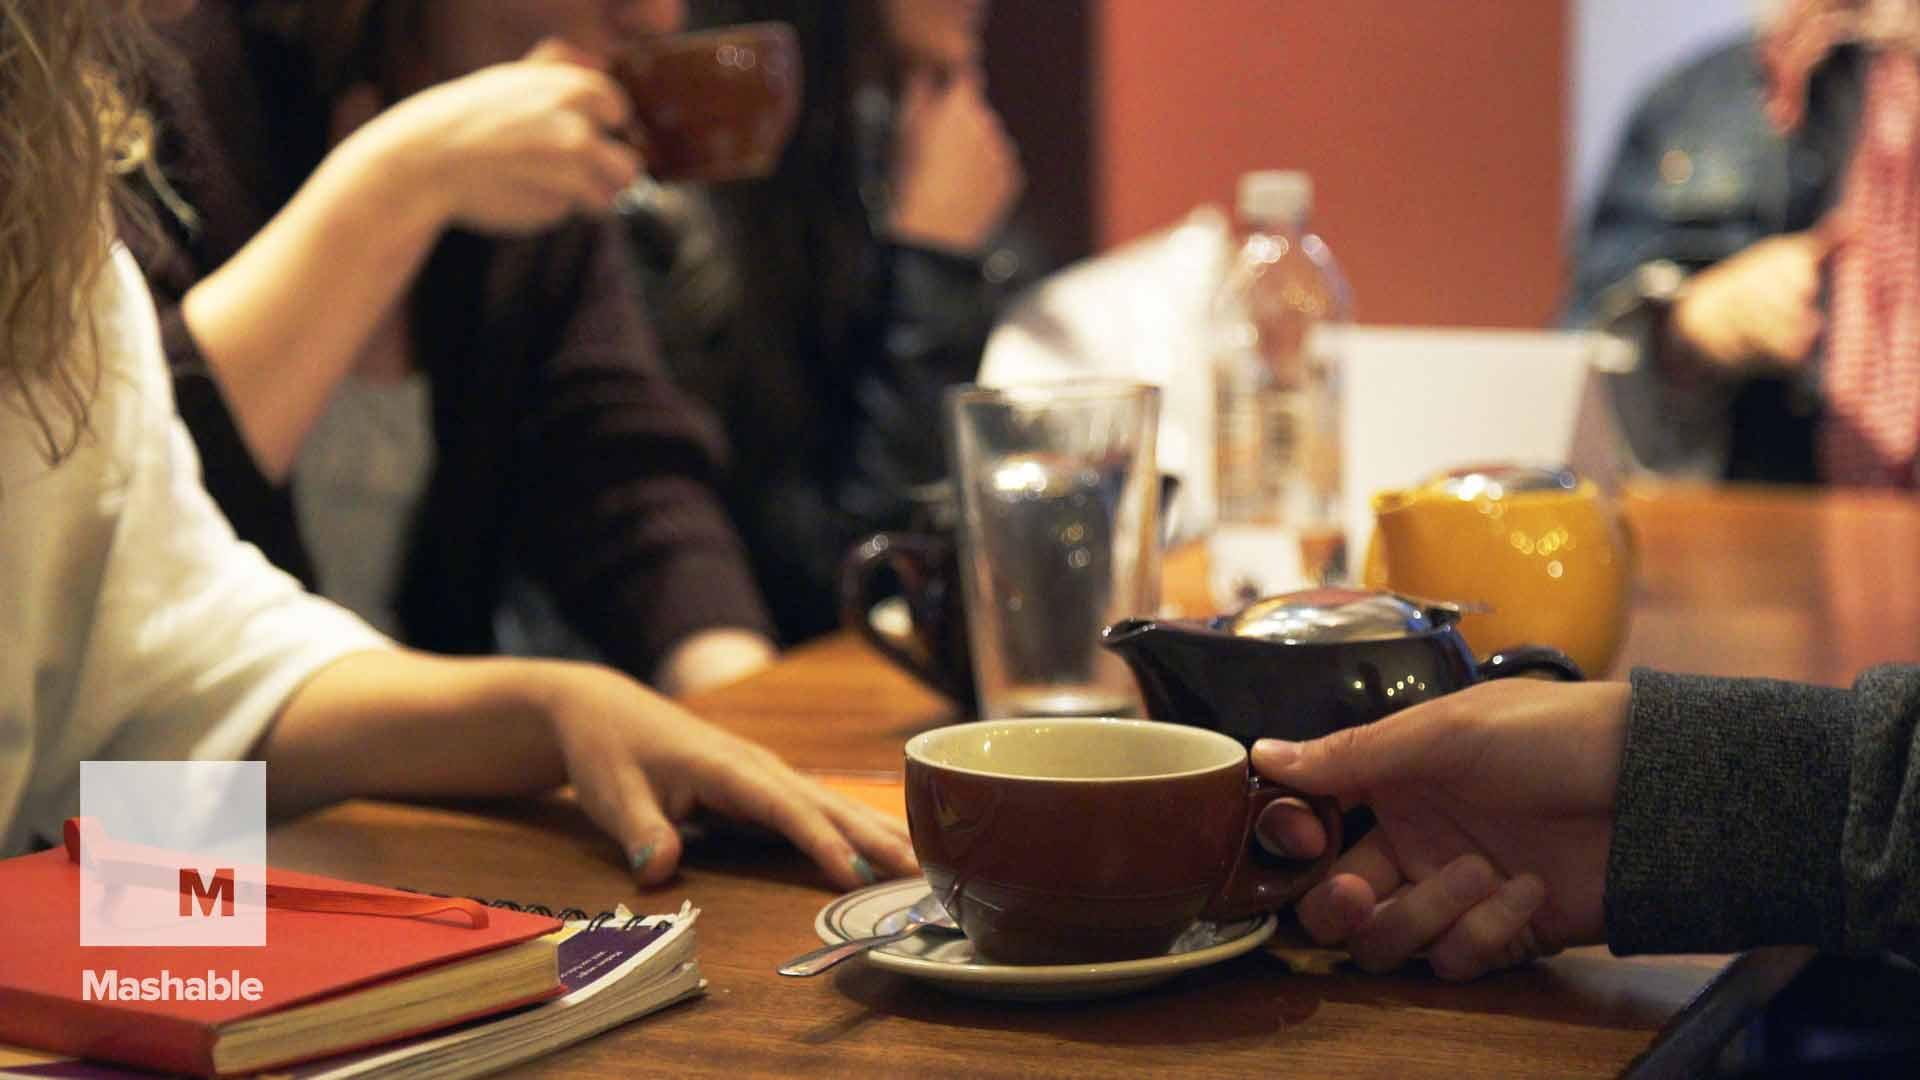 Want to meet new people in a big city? 'Tea With Strangers' could be your ticket.